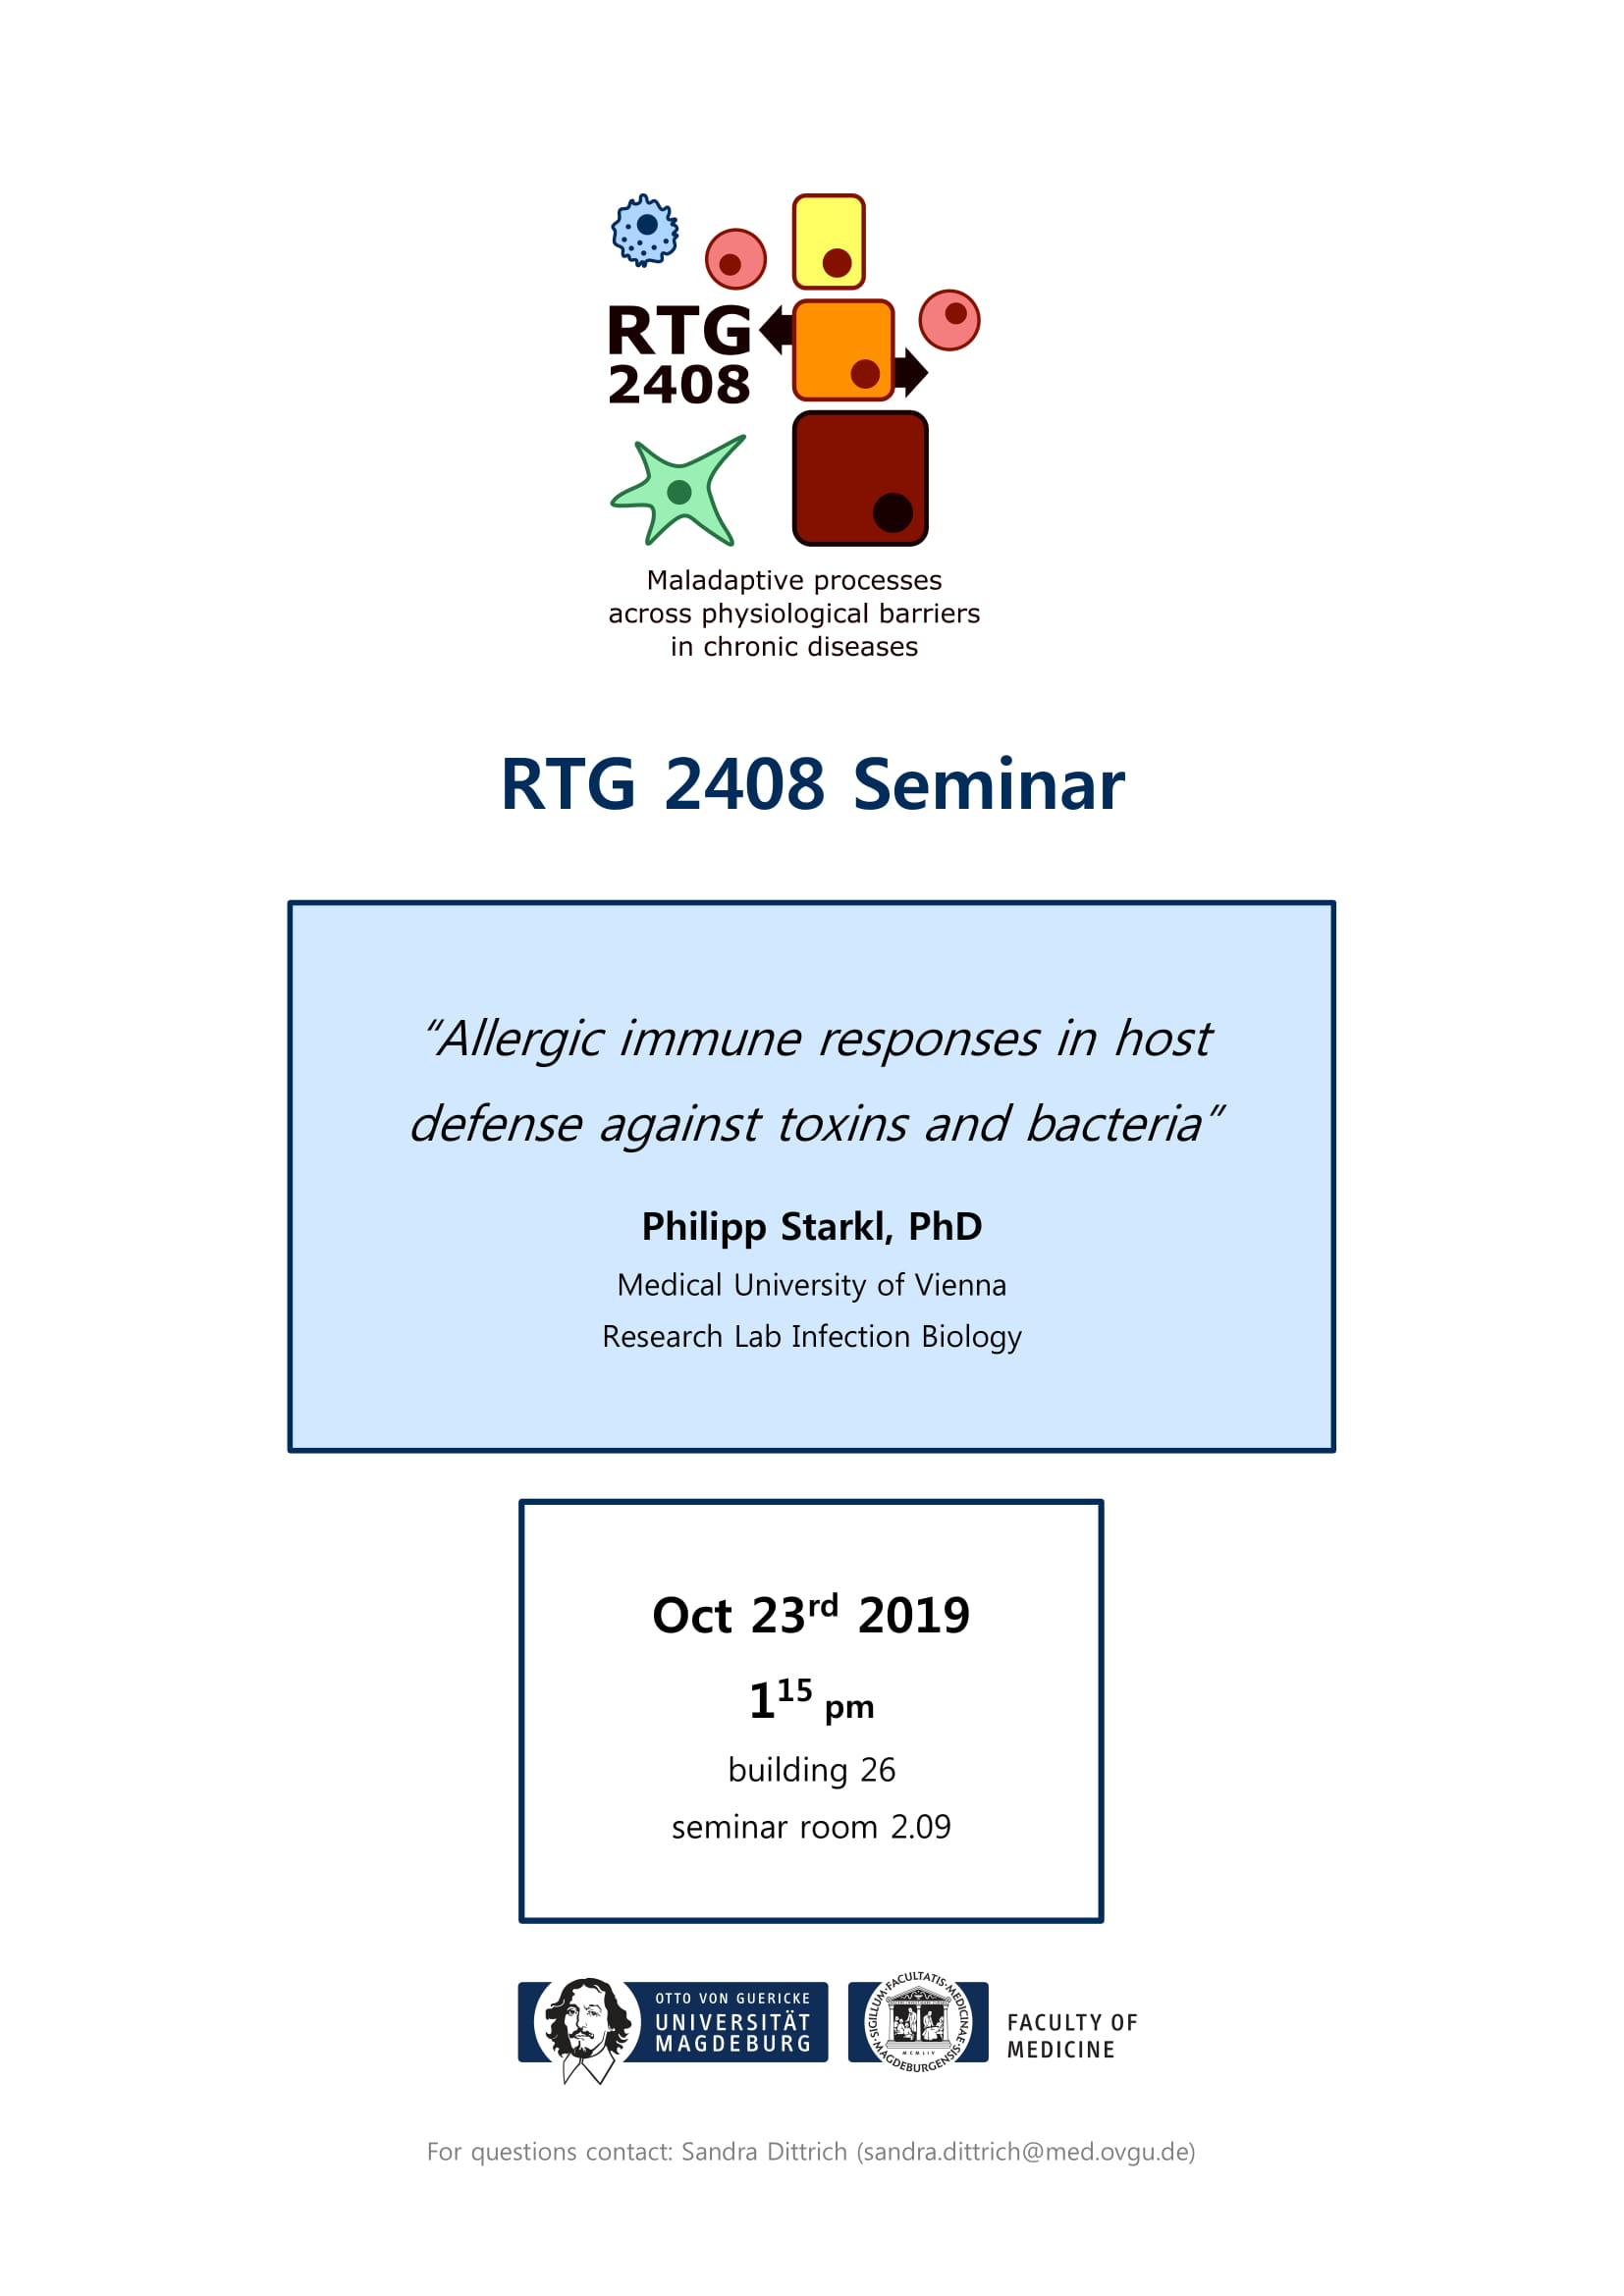 RTG 2408 Seminar: Allergic immune responses in host defense against toxins and bacteria @ Medical Campus, House 26, seminar room 2.09